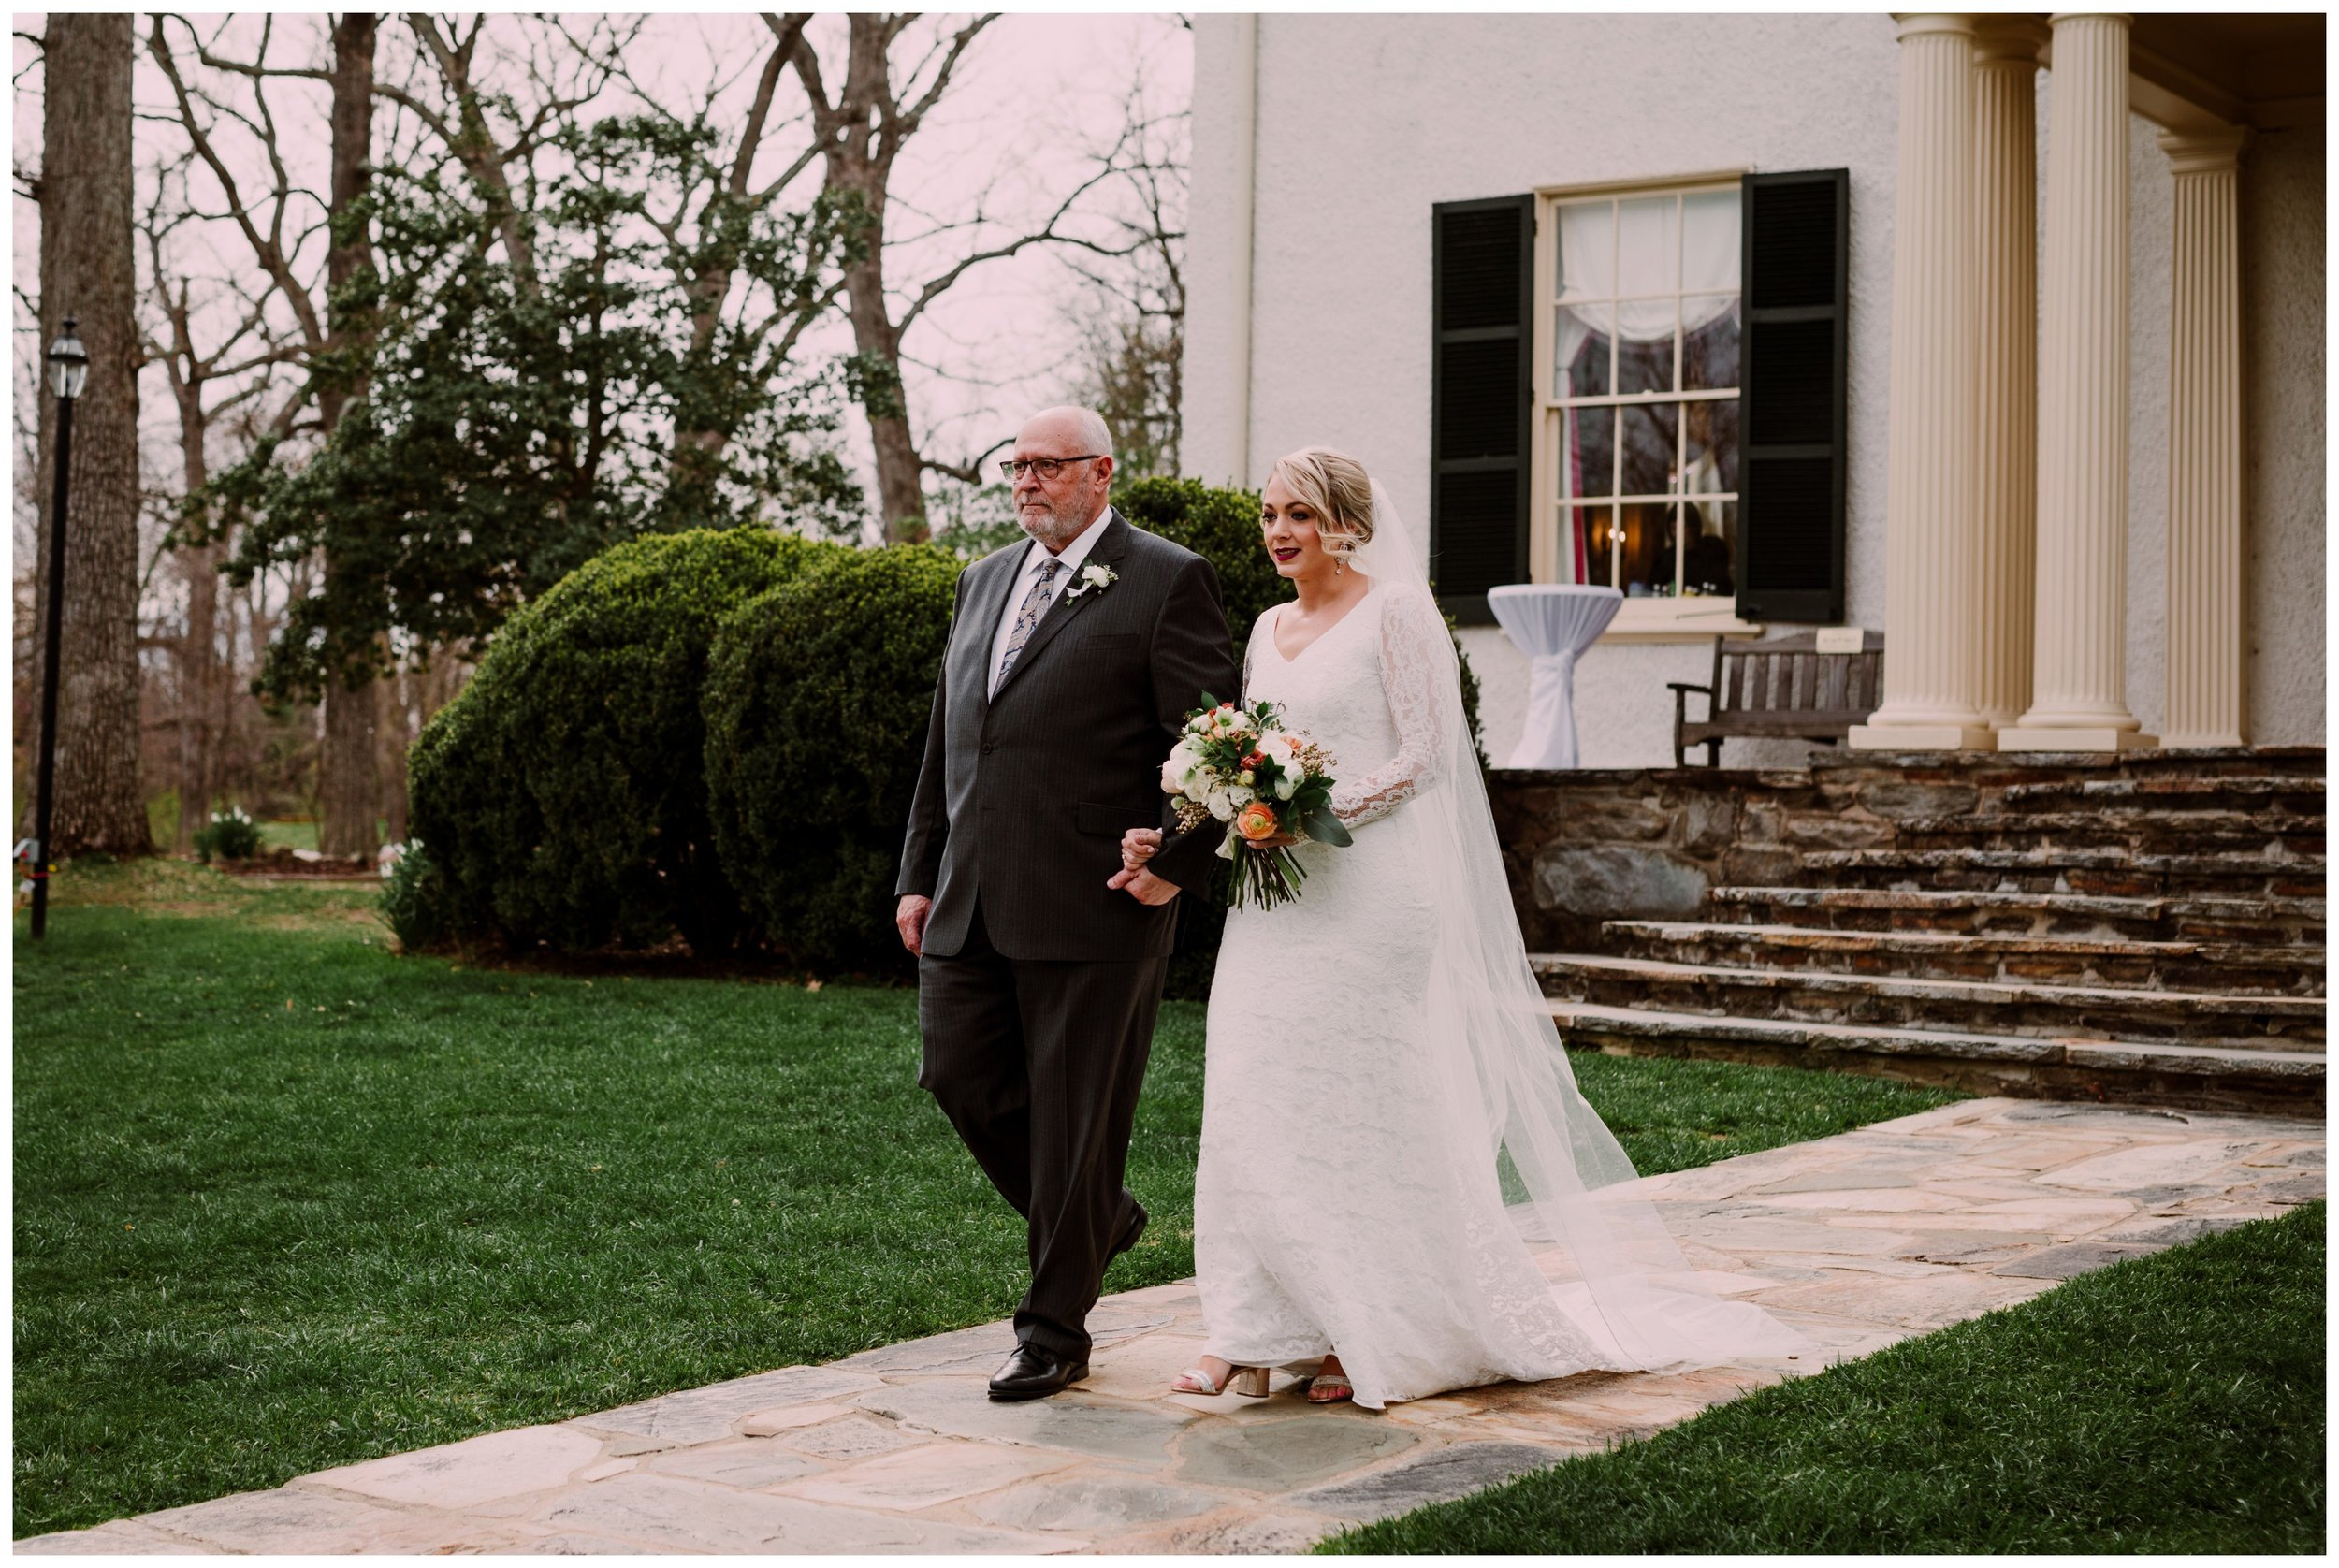 Andrea & Kyle | Traditional Virginia Rust Manor Wedding Highlights | Virginia Wedding Photographer-17.jpg